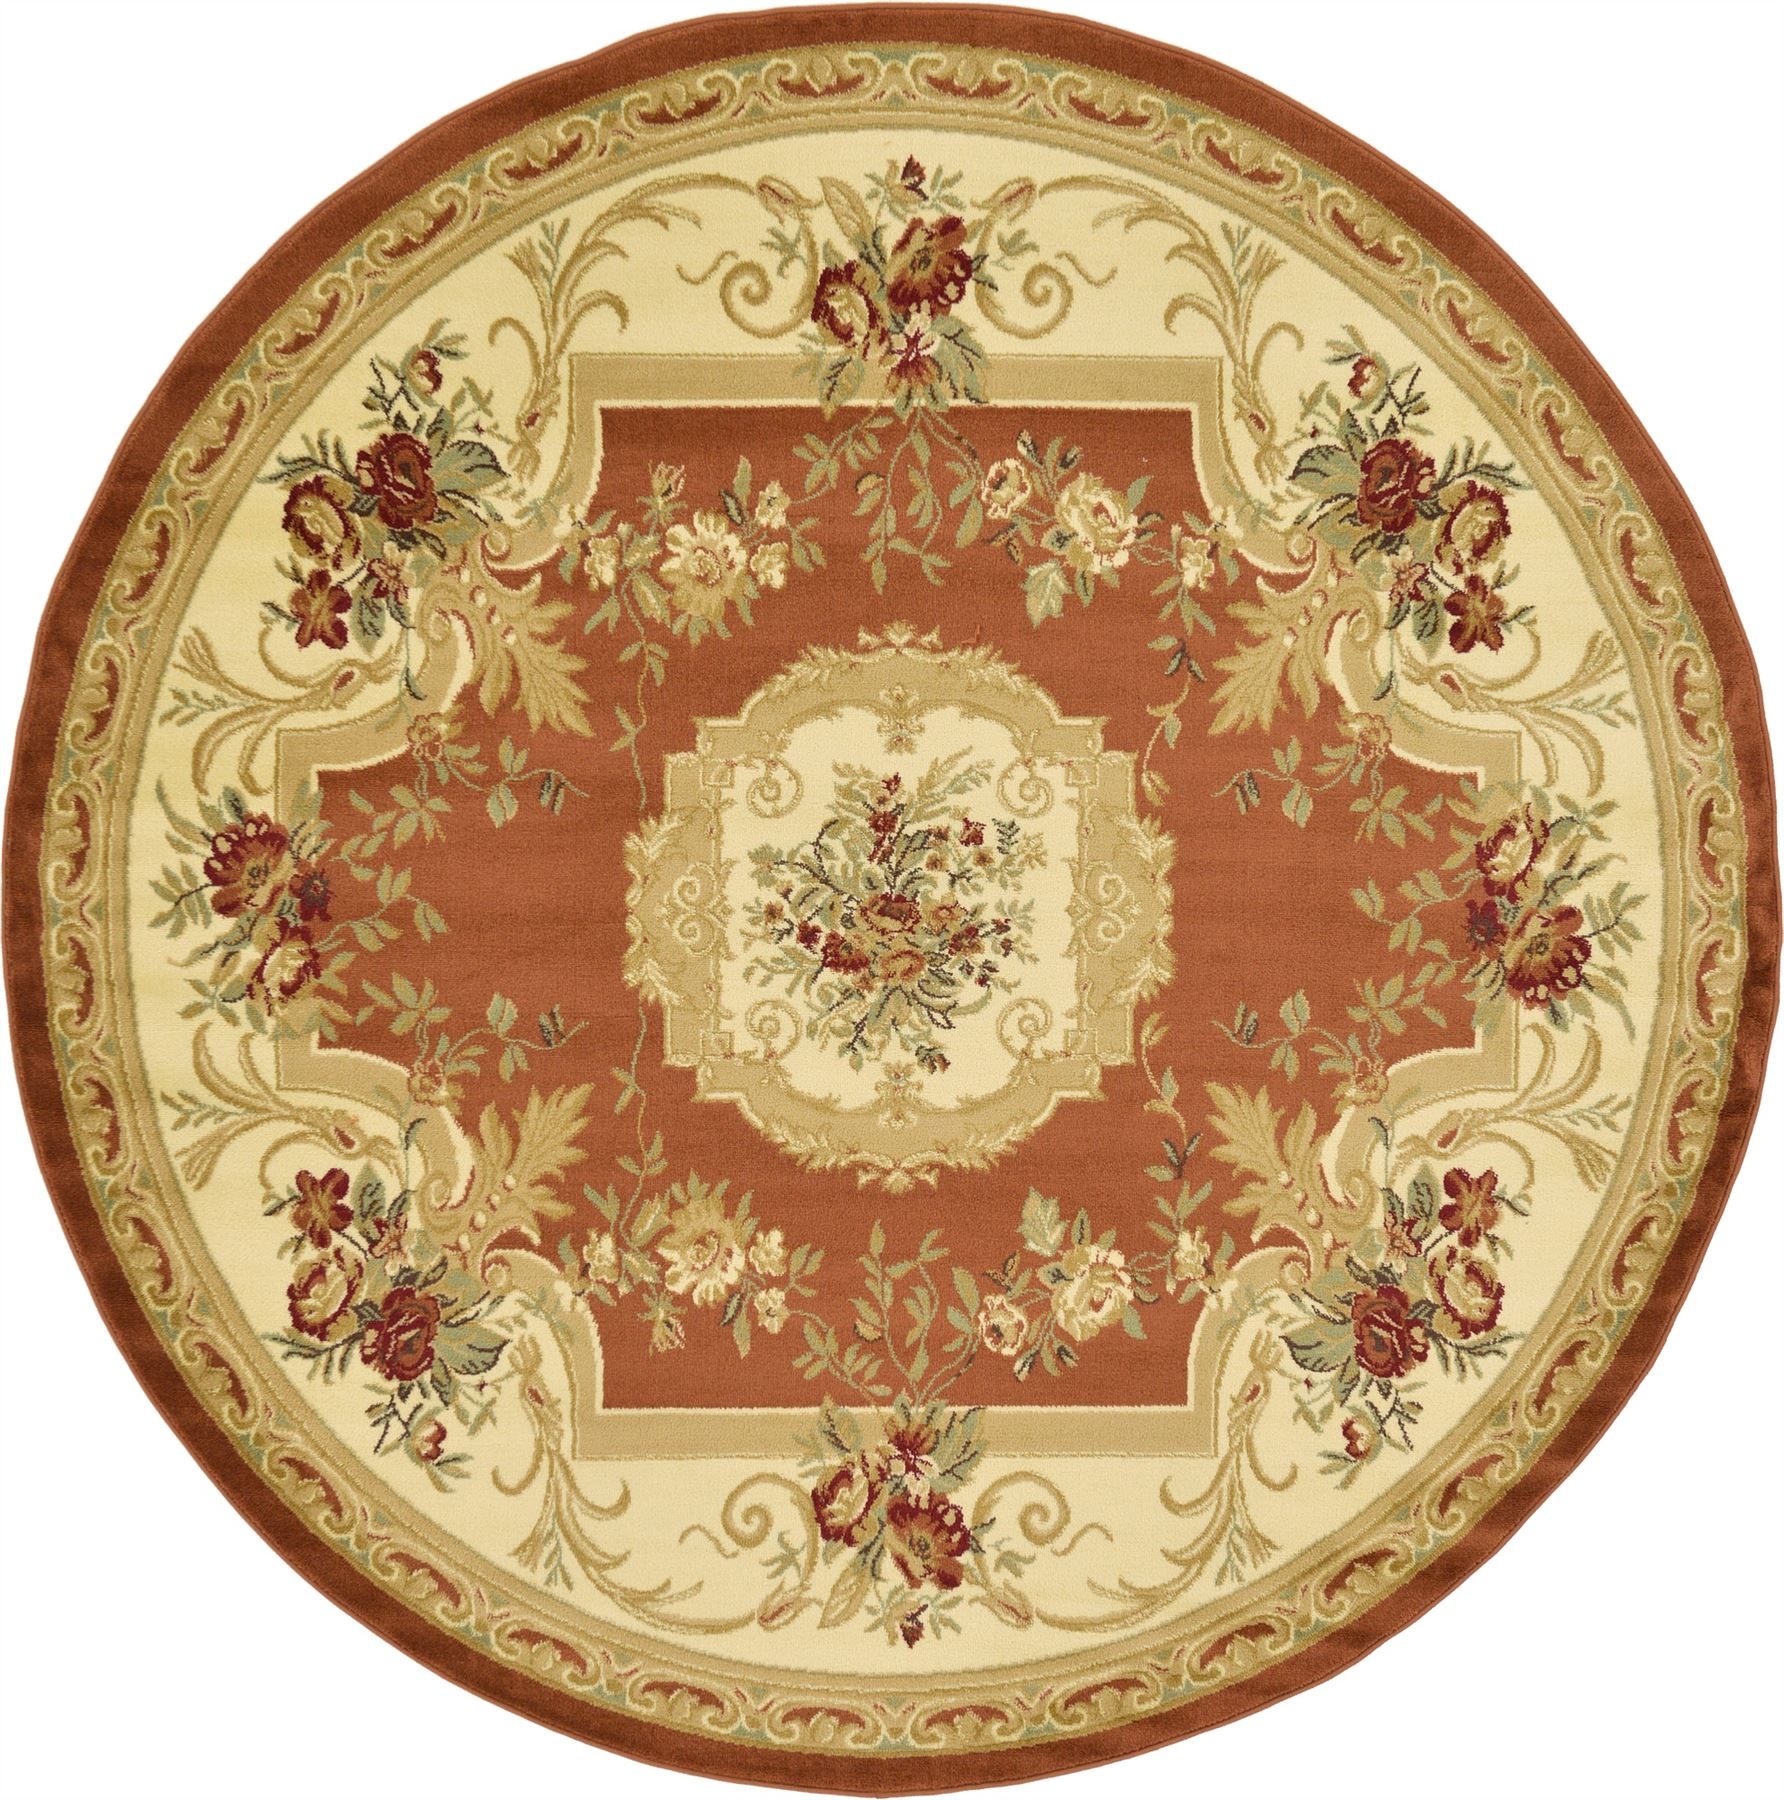 aubusson rugs history